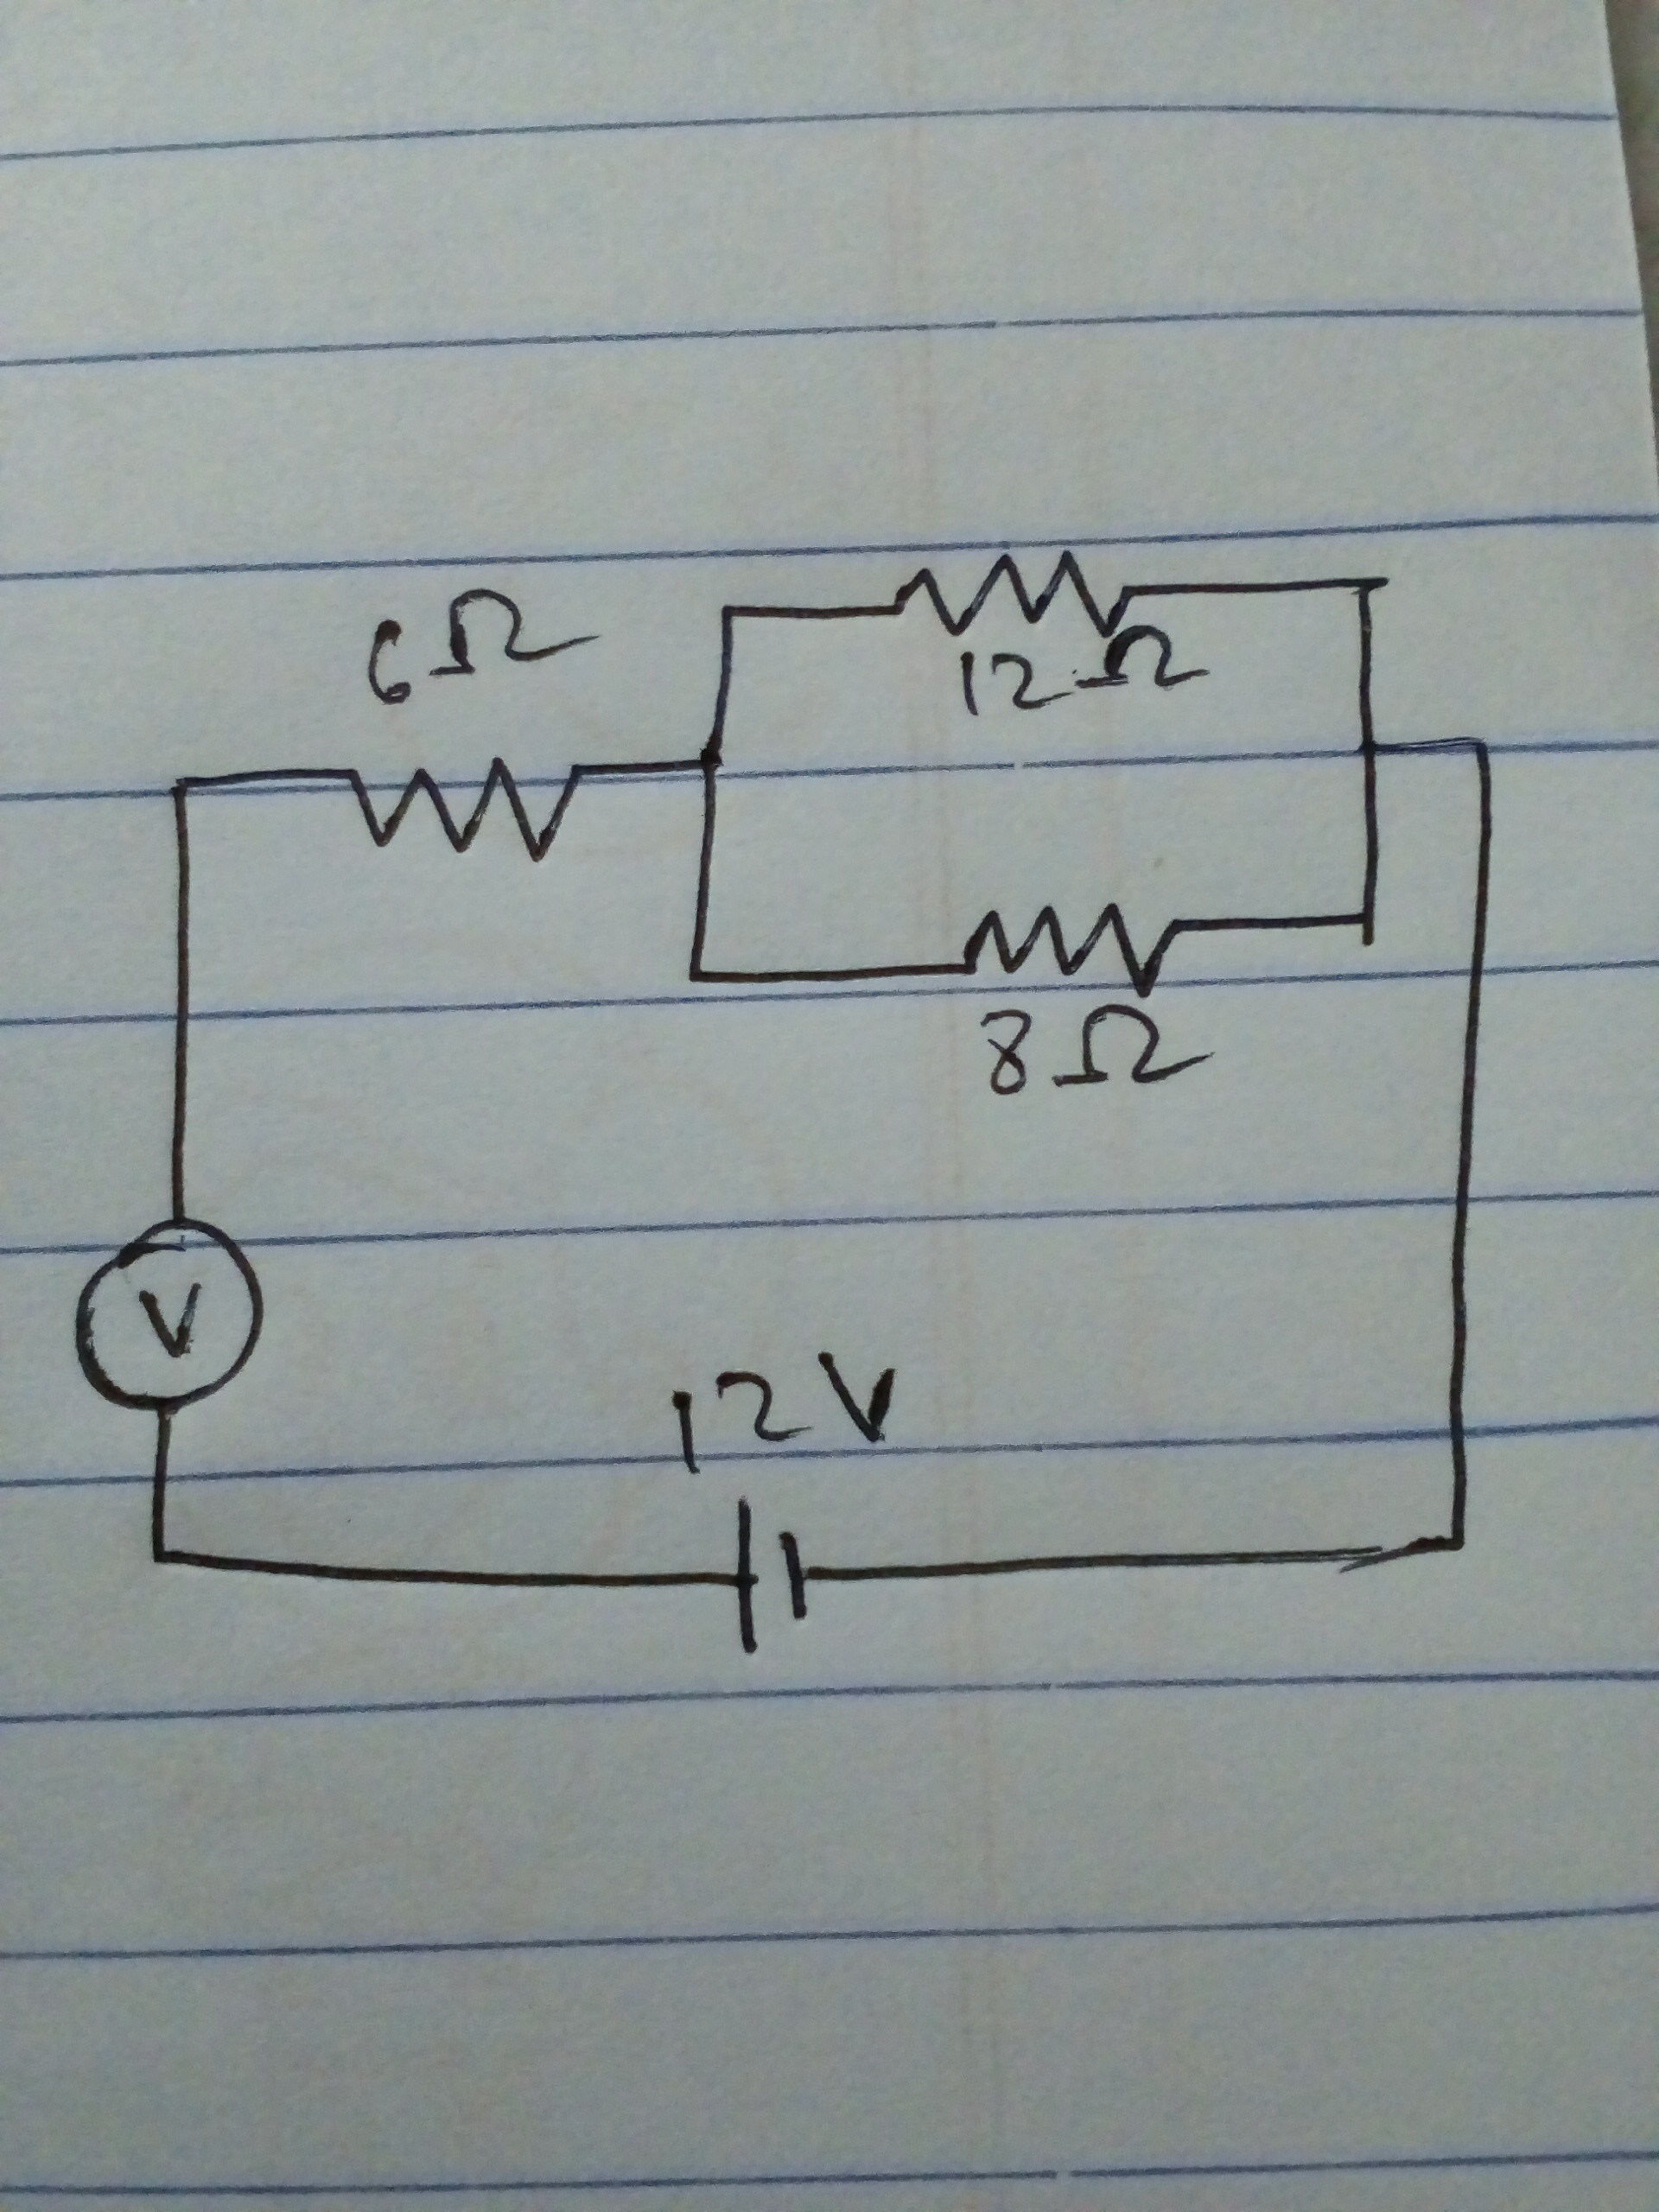 Gh 2108 Electric Circuit Use Of Ammeters And Voltmeters Physics Homework Help Schematic Wiring [ 2560 x 1920 Pixel ]